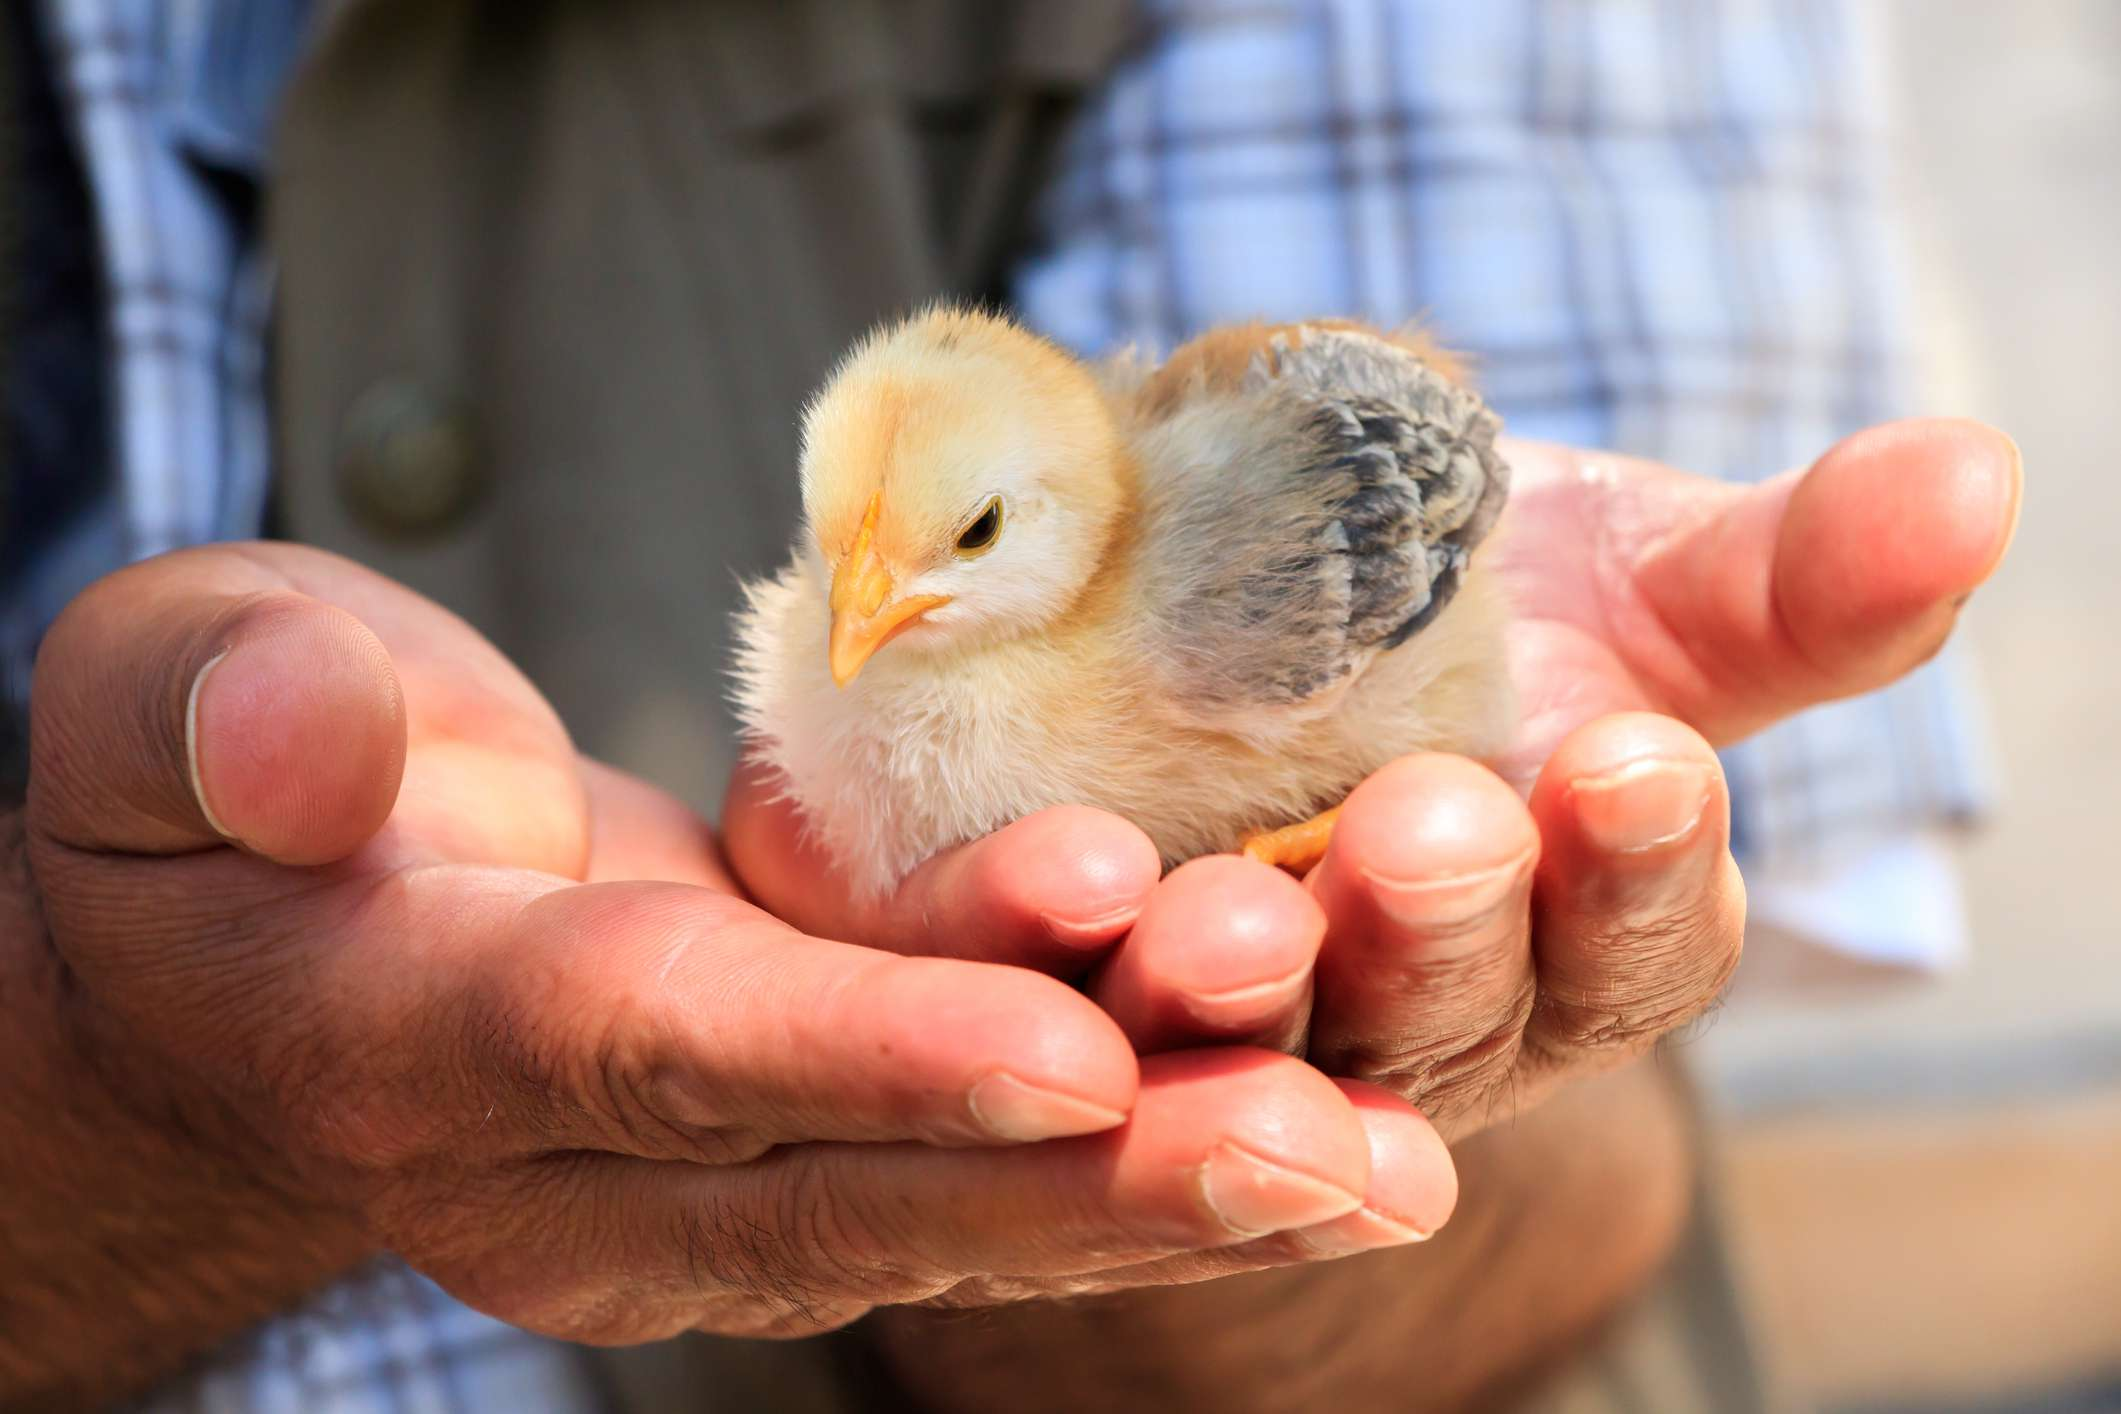 A little chick being held in hands.